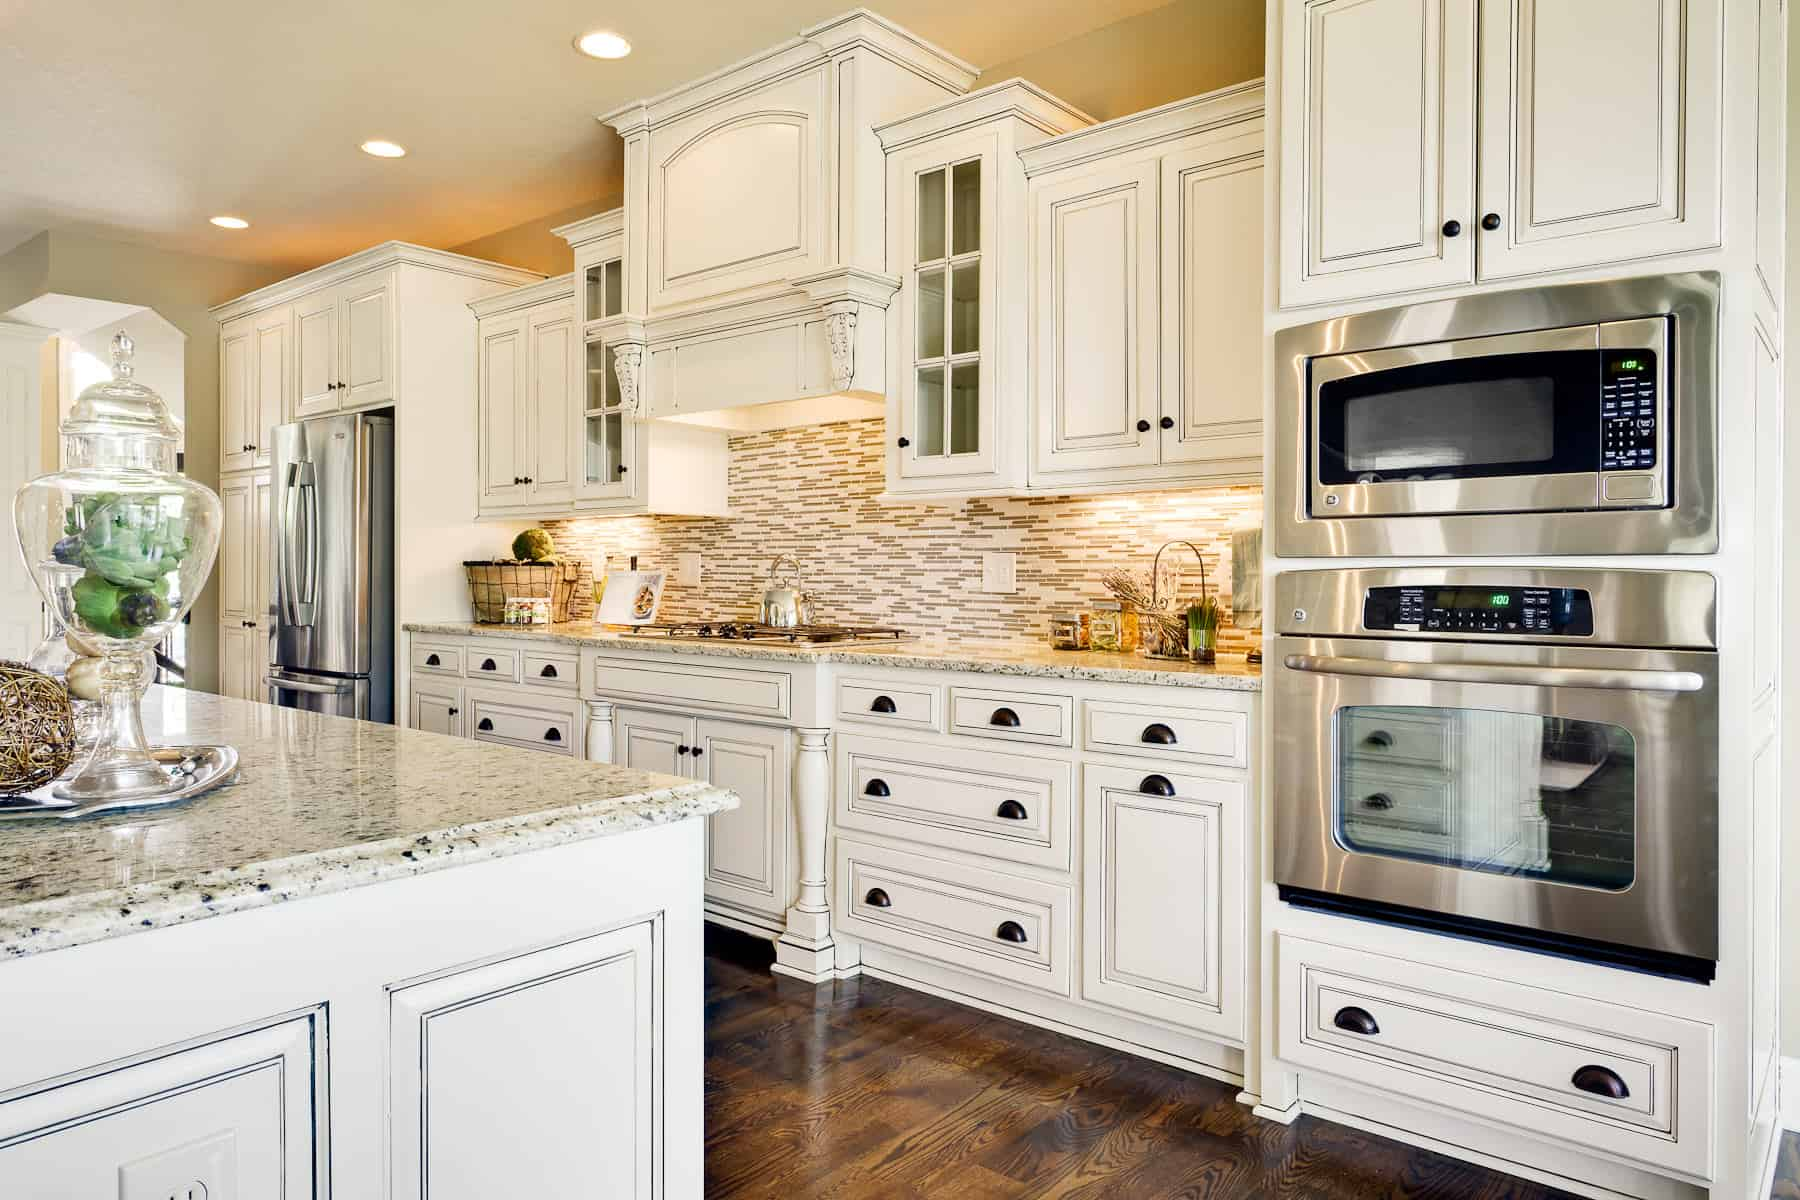 Granite Kitchen Countertops With White Cabinets How Much Do Granite Countertops Cost Countertop Guides